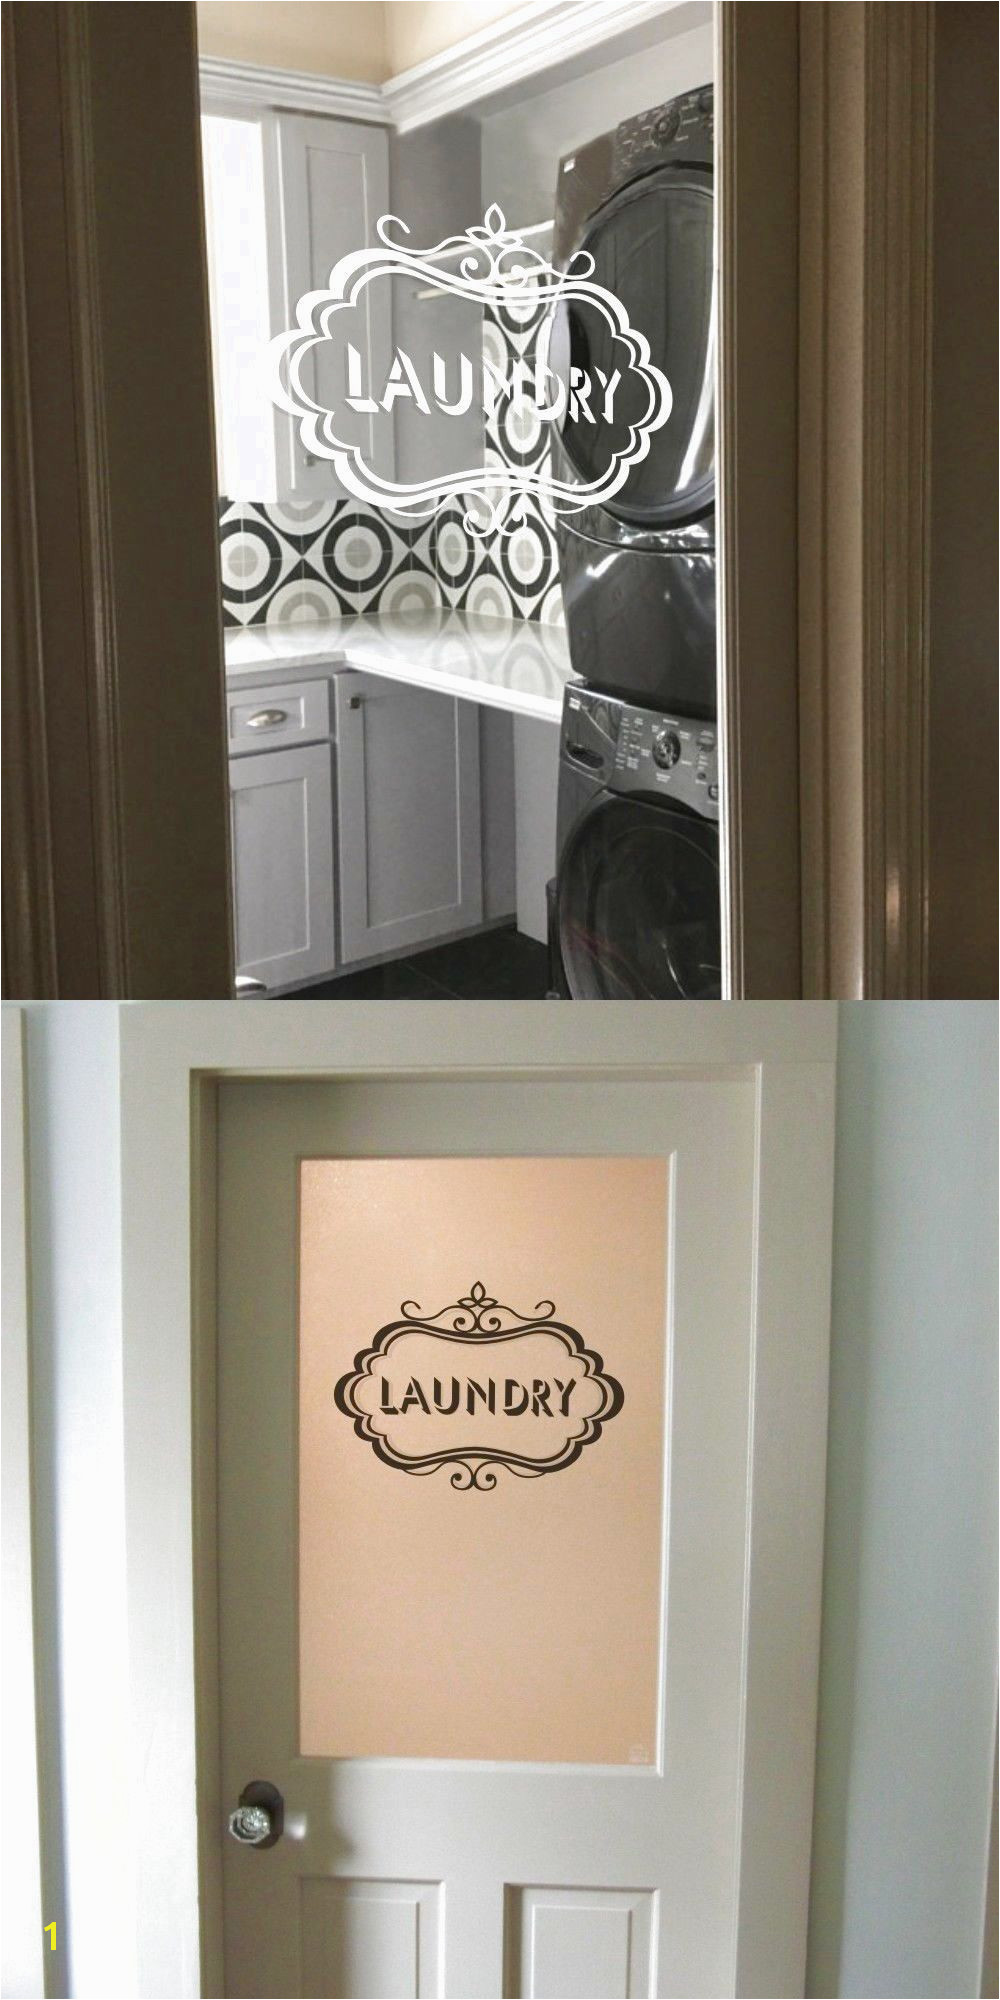 Inspired Wall Decal Laundry Room Glass Door Quote Home Removable Art Mural Decor $11 2